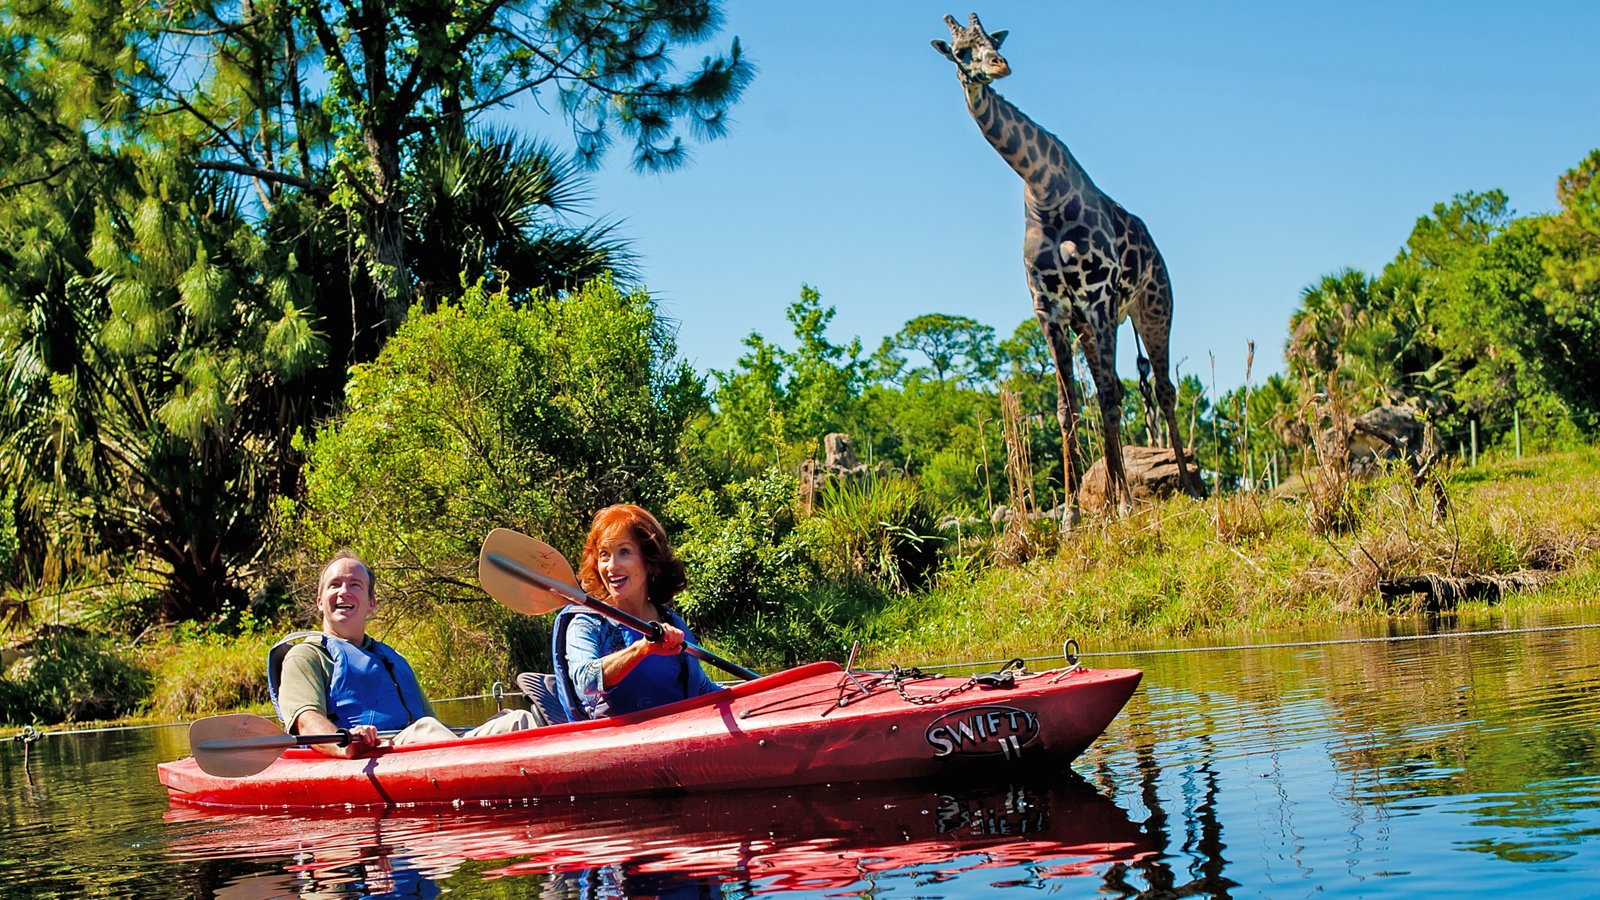 Space Coast which includes land animals, kayaking or canoeing and zoo animals